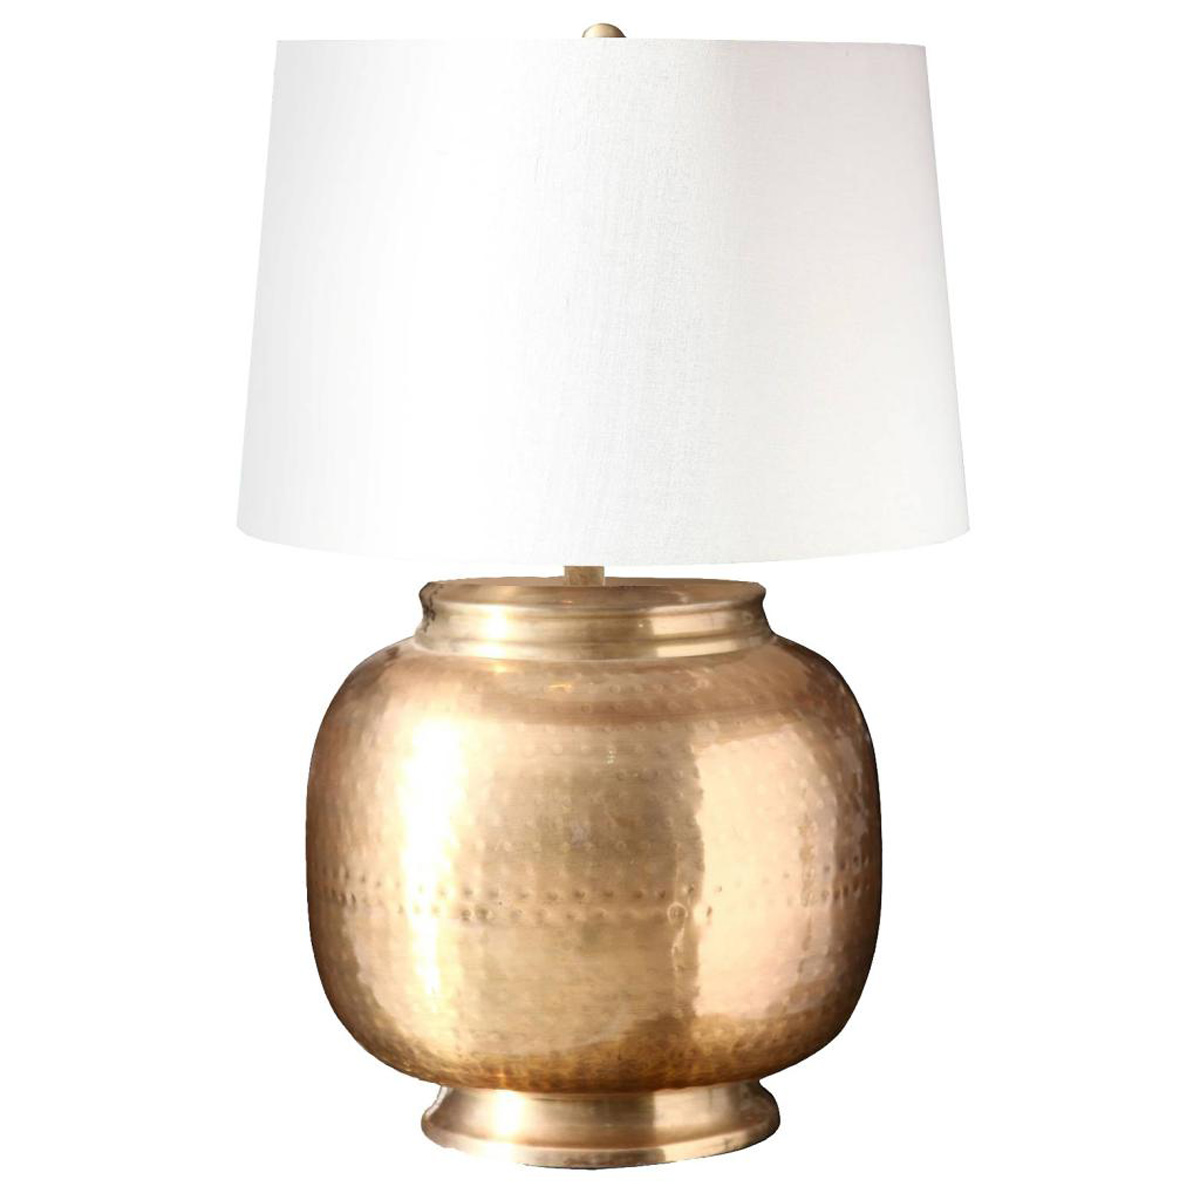 Ren-Wil Bodkin Table Lamp - Copper